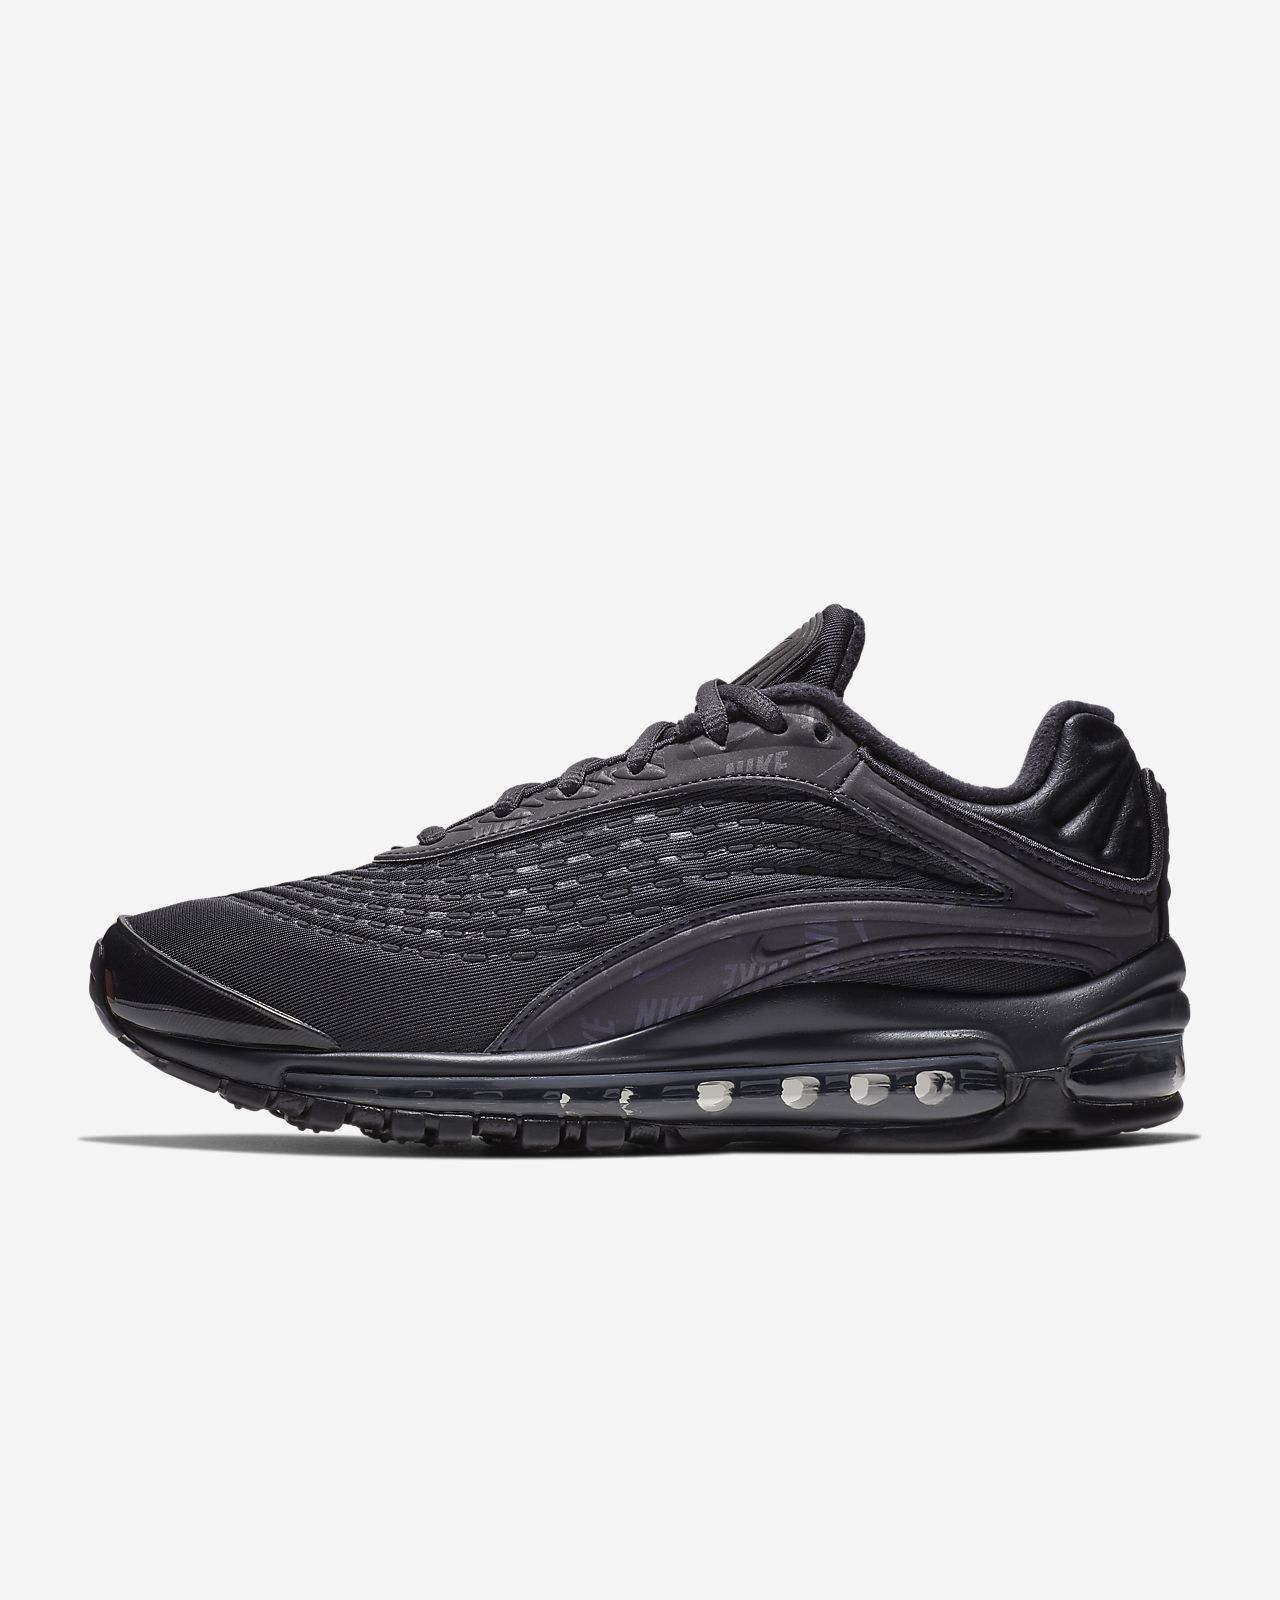 Nike Air Max Deluxe SE Women's Shoe